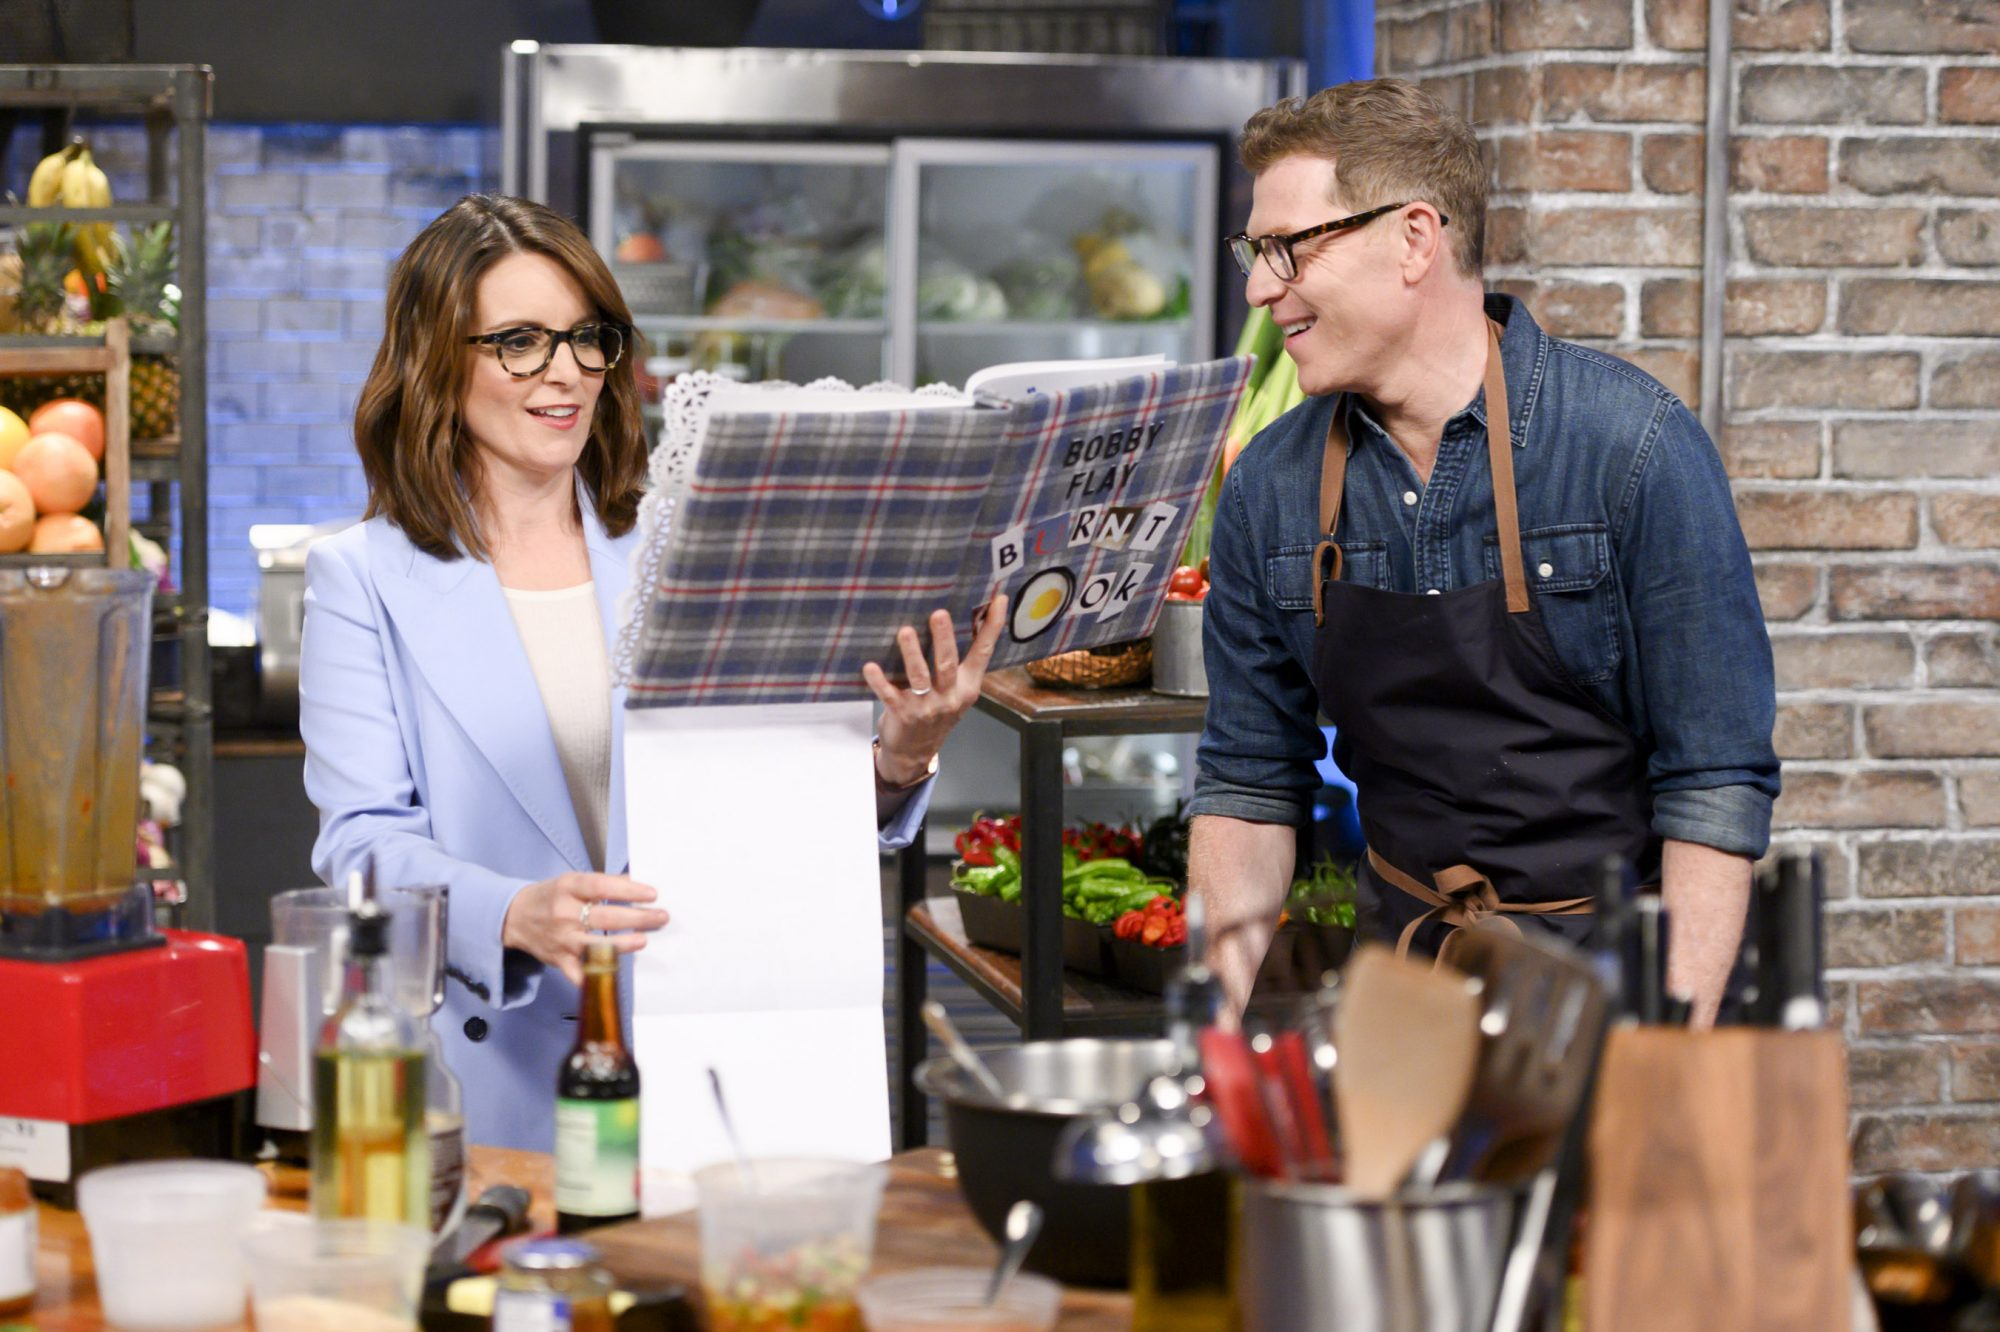 Co-host Tina Fey reads to host Bobby Flay from a burn book as he races to finish his lamb shawarma dish, as seen on Beat Bobby Flay, Season 25.